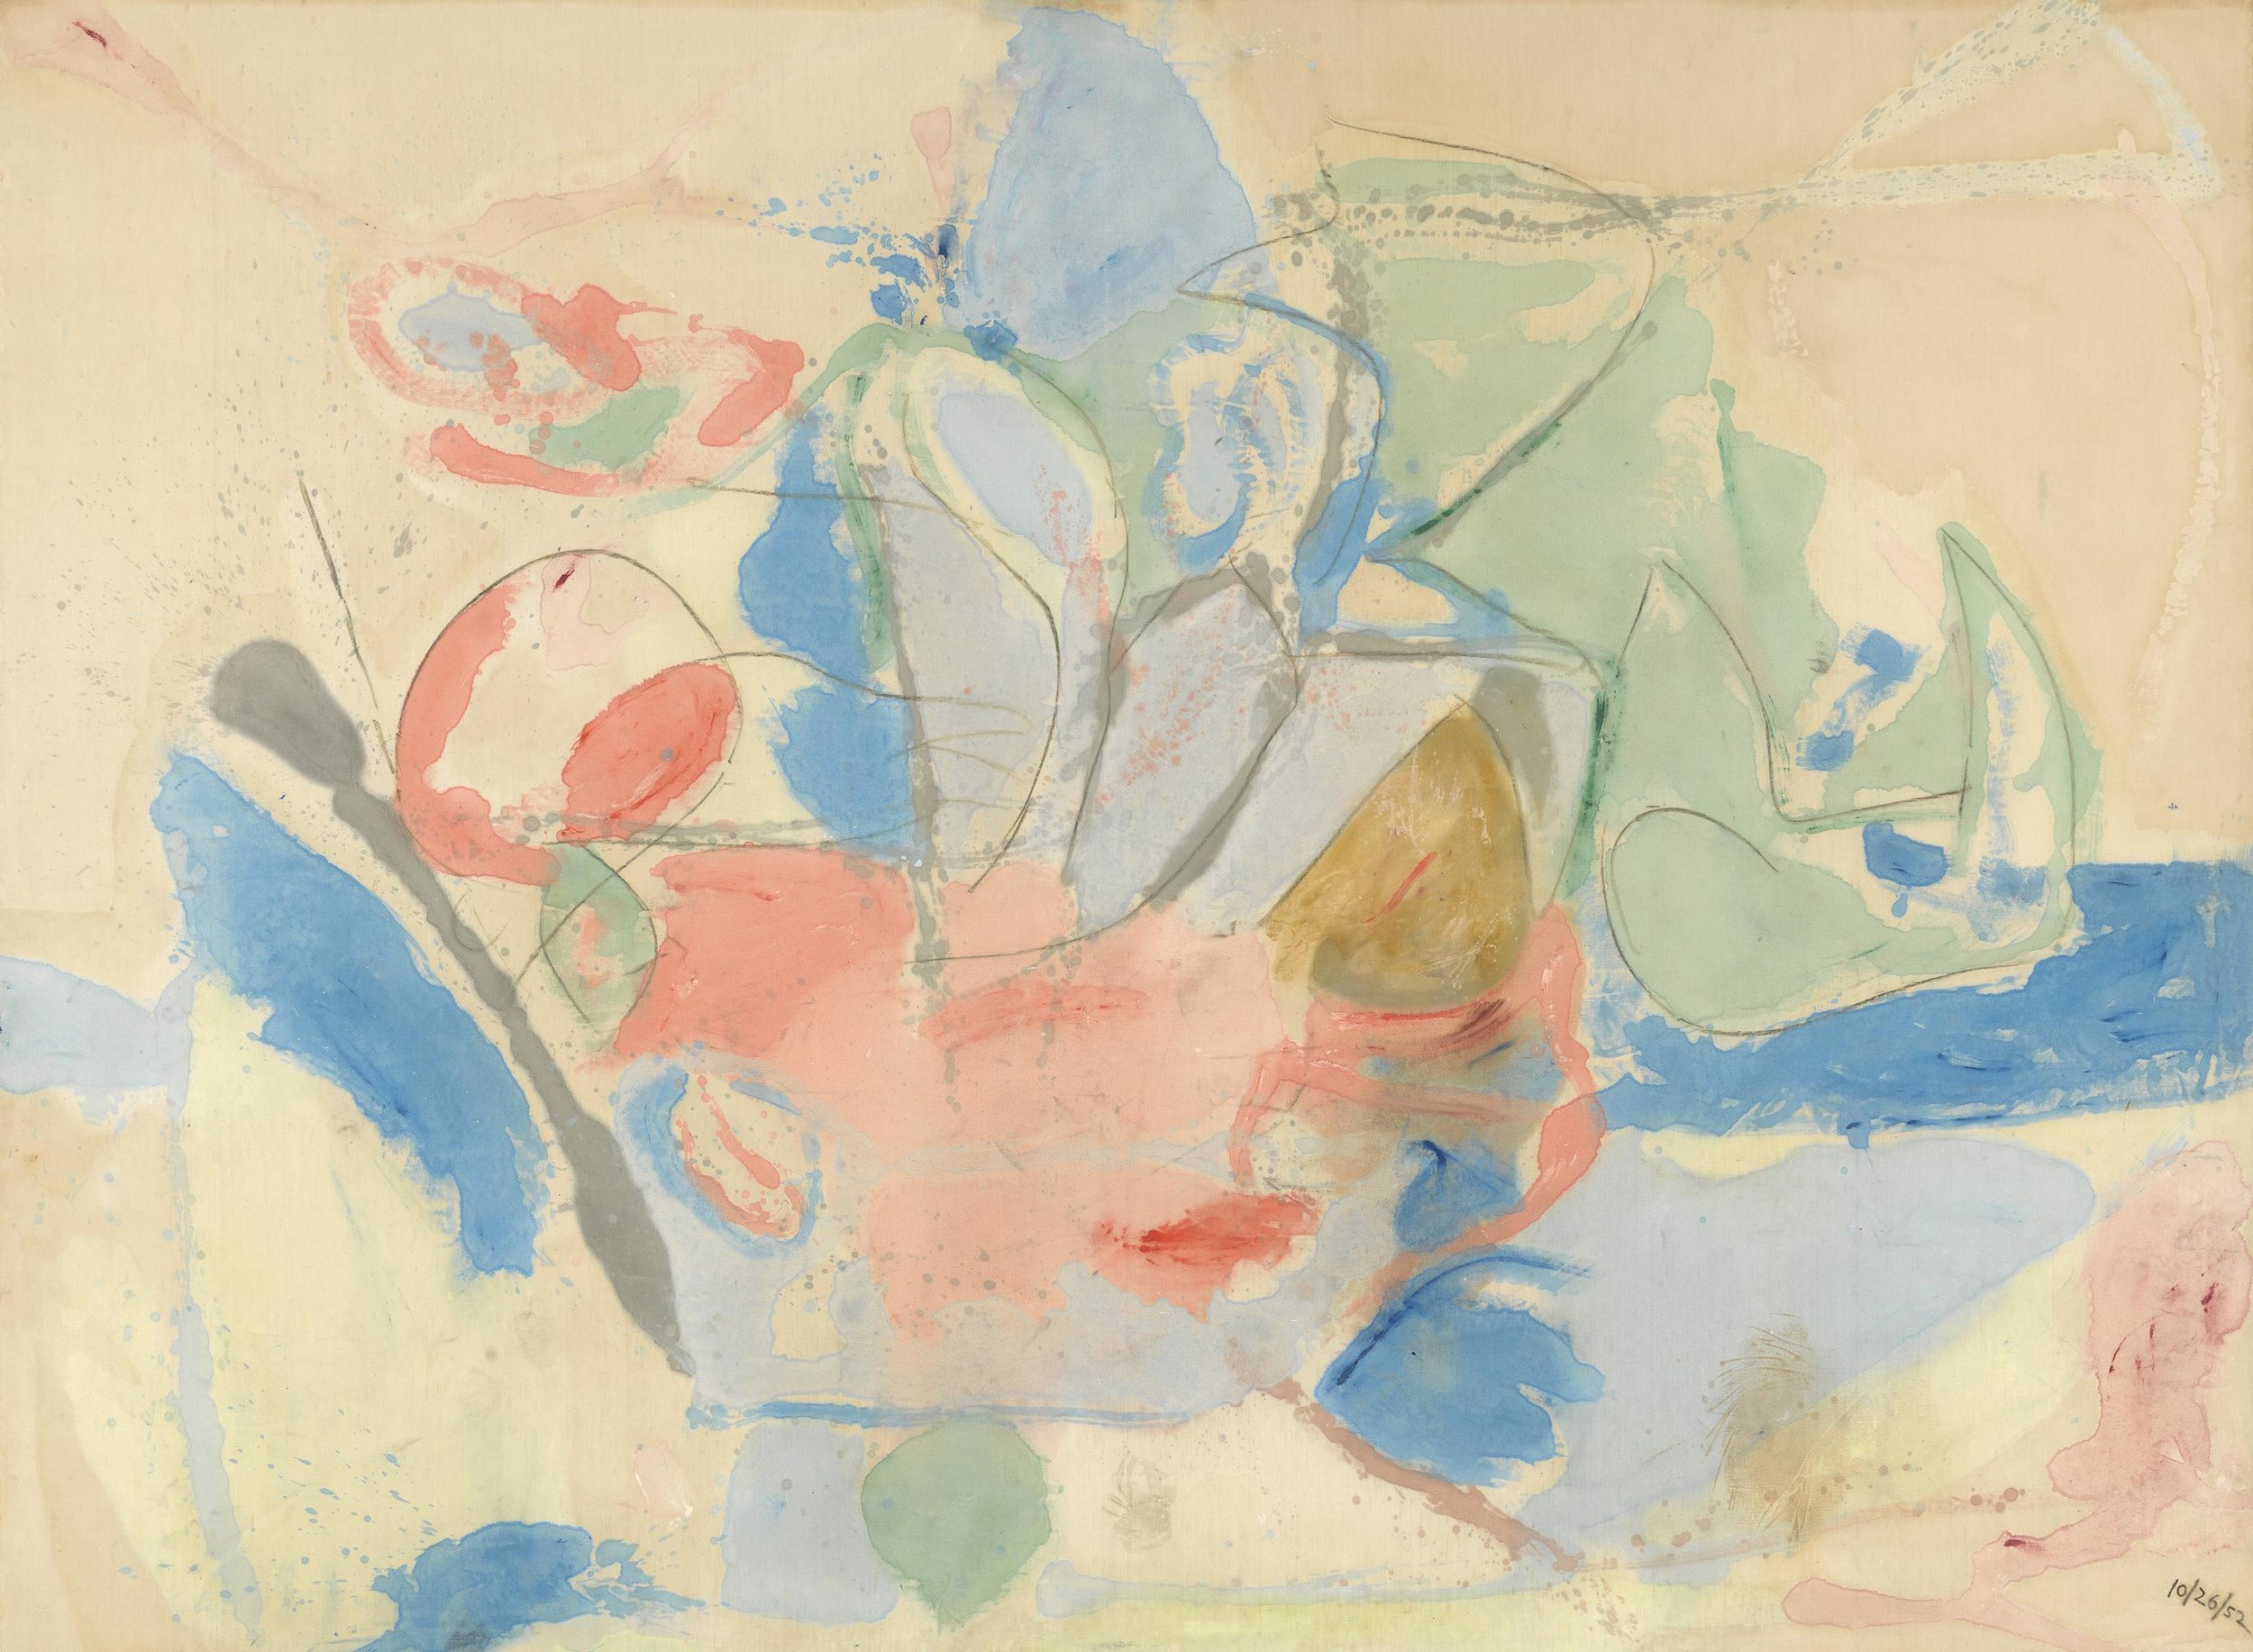 Helen Frankenthaler, Mountains and Sea  National Gallery of Art, Washington, 1952